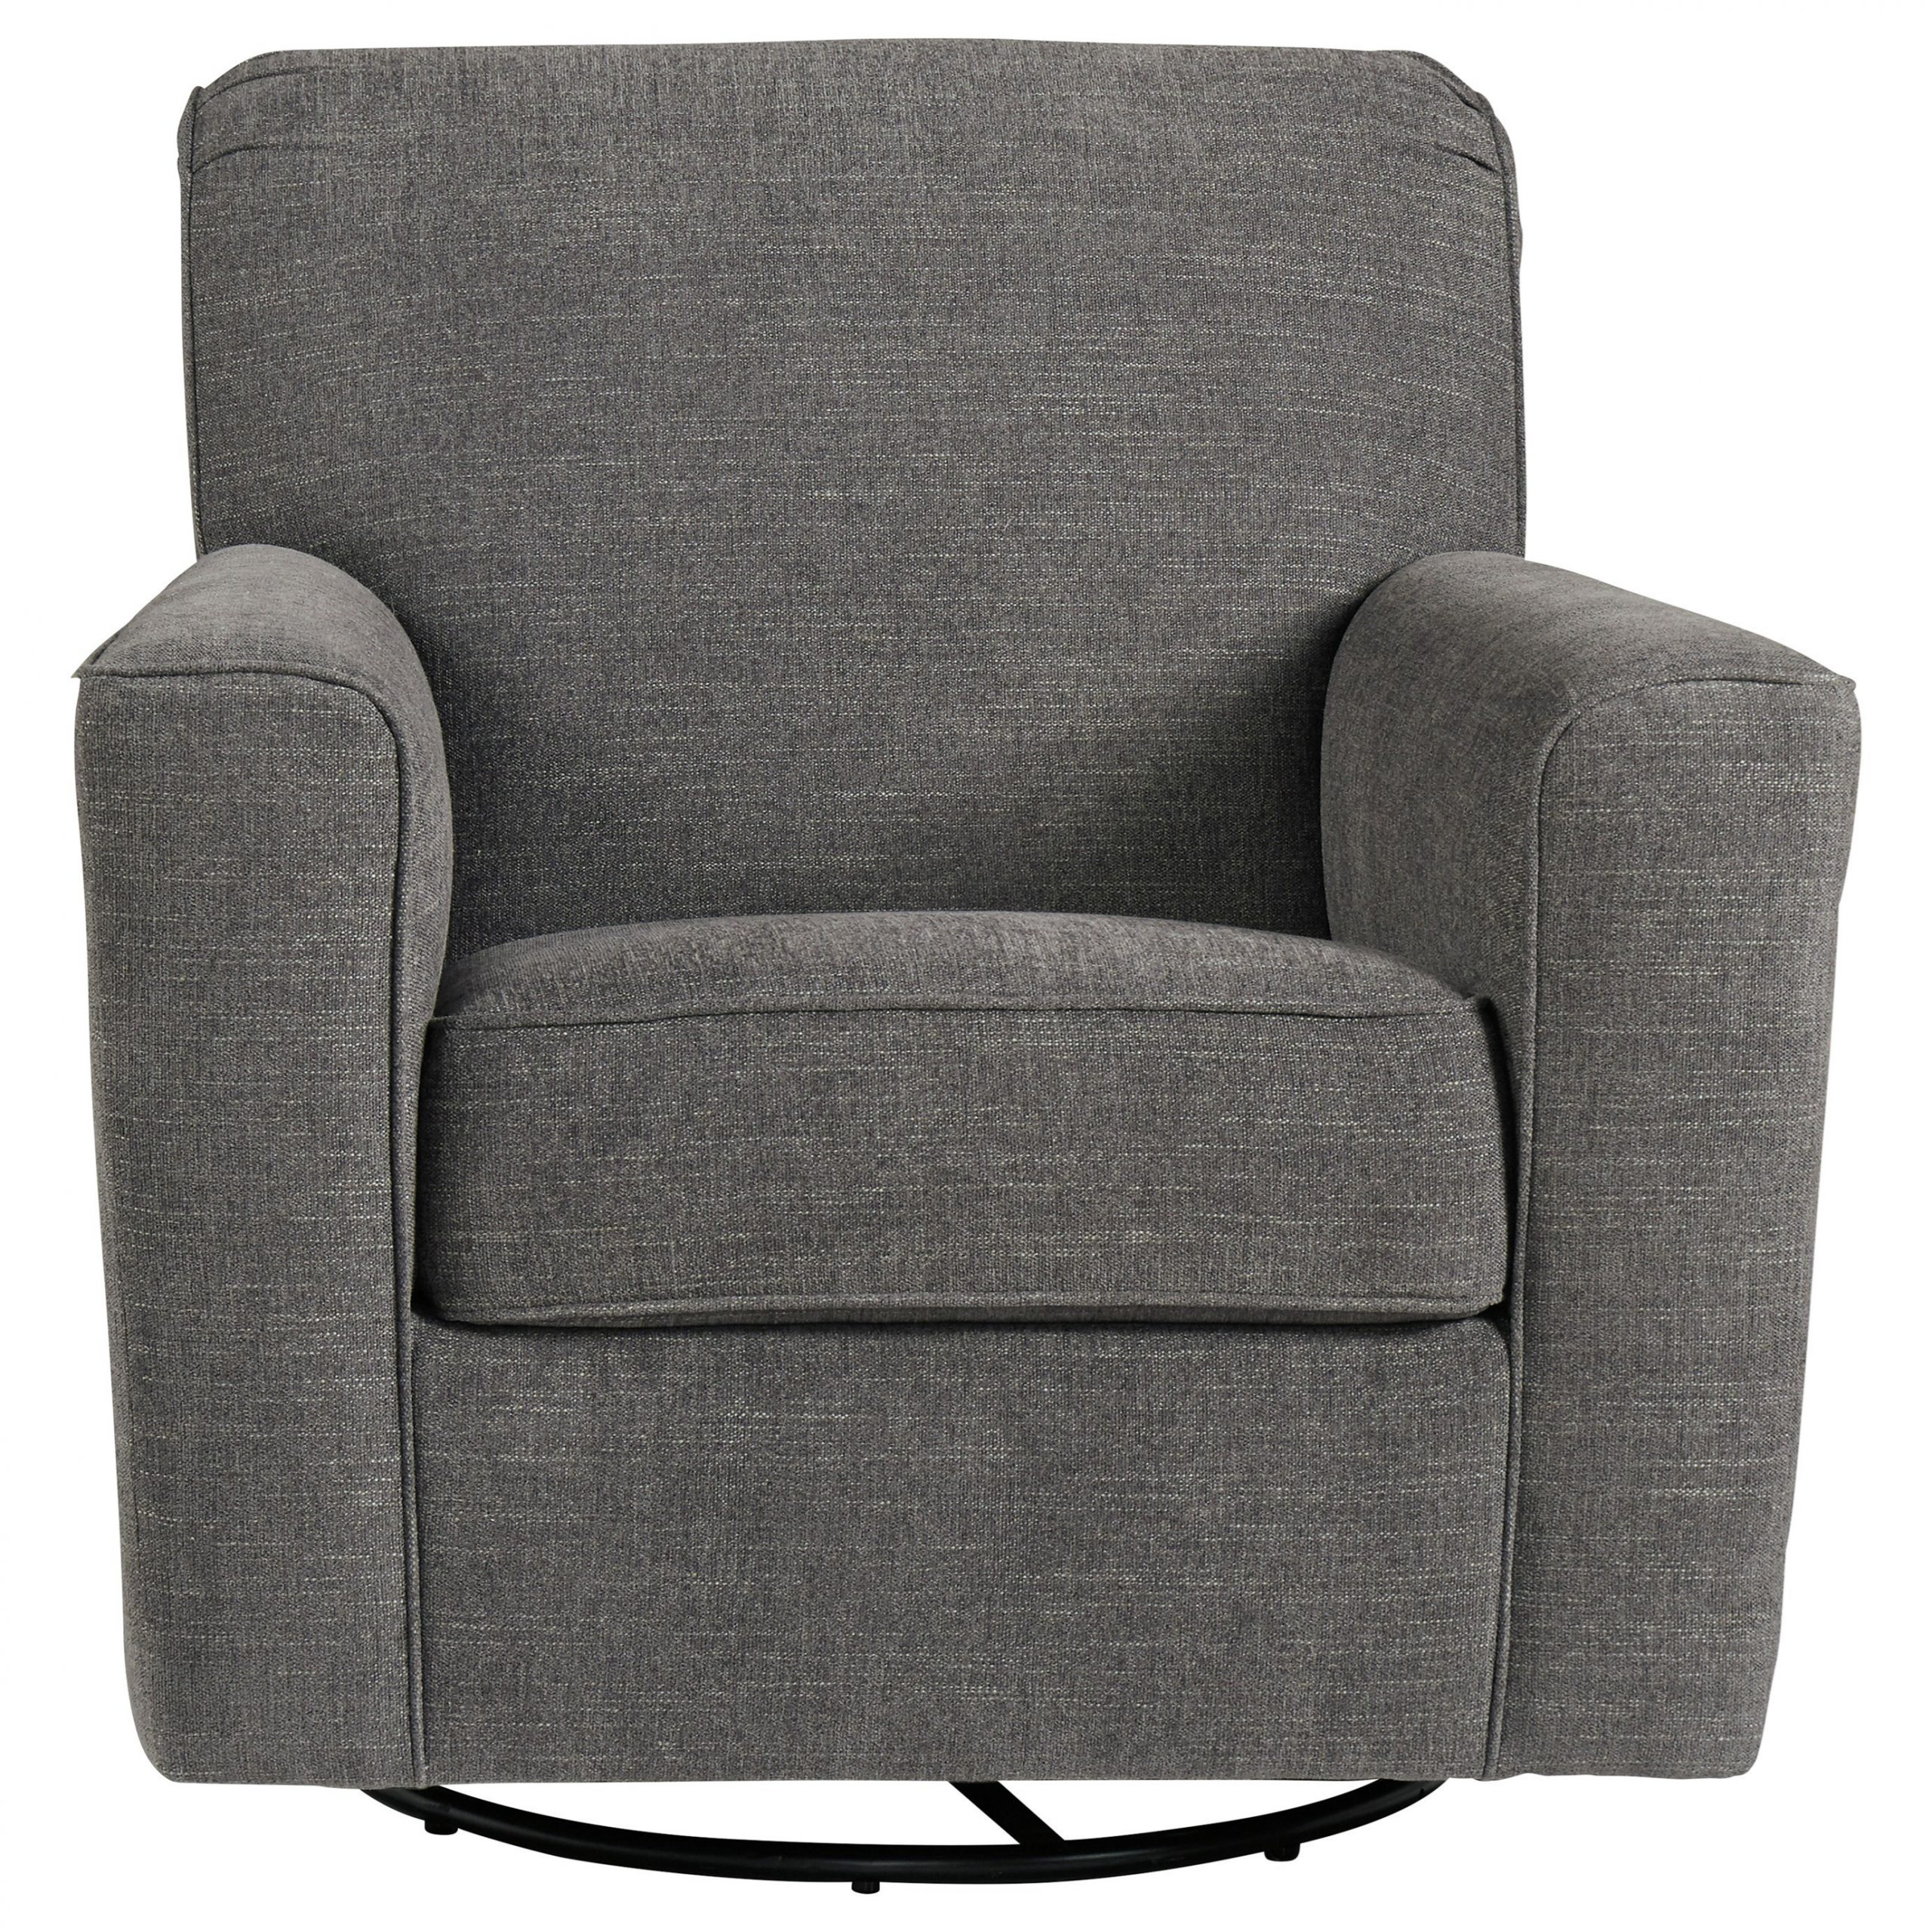 Ashley Furniture Alcona 9831042 Swivel Glider Accent Chair With Regard To Swivel Sofa Chairs (View 12 of 15)